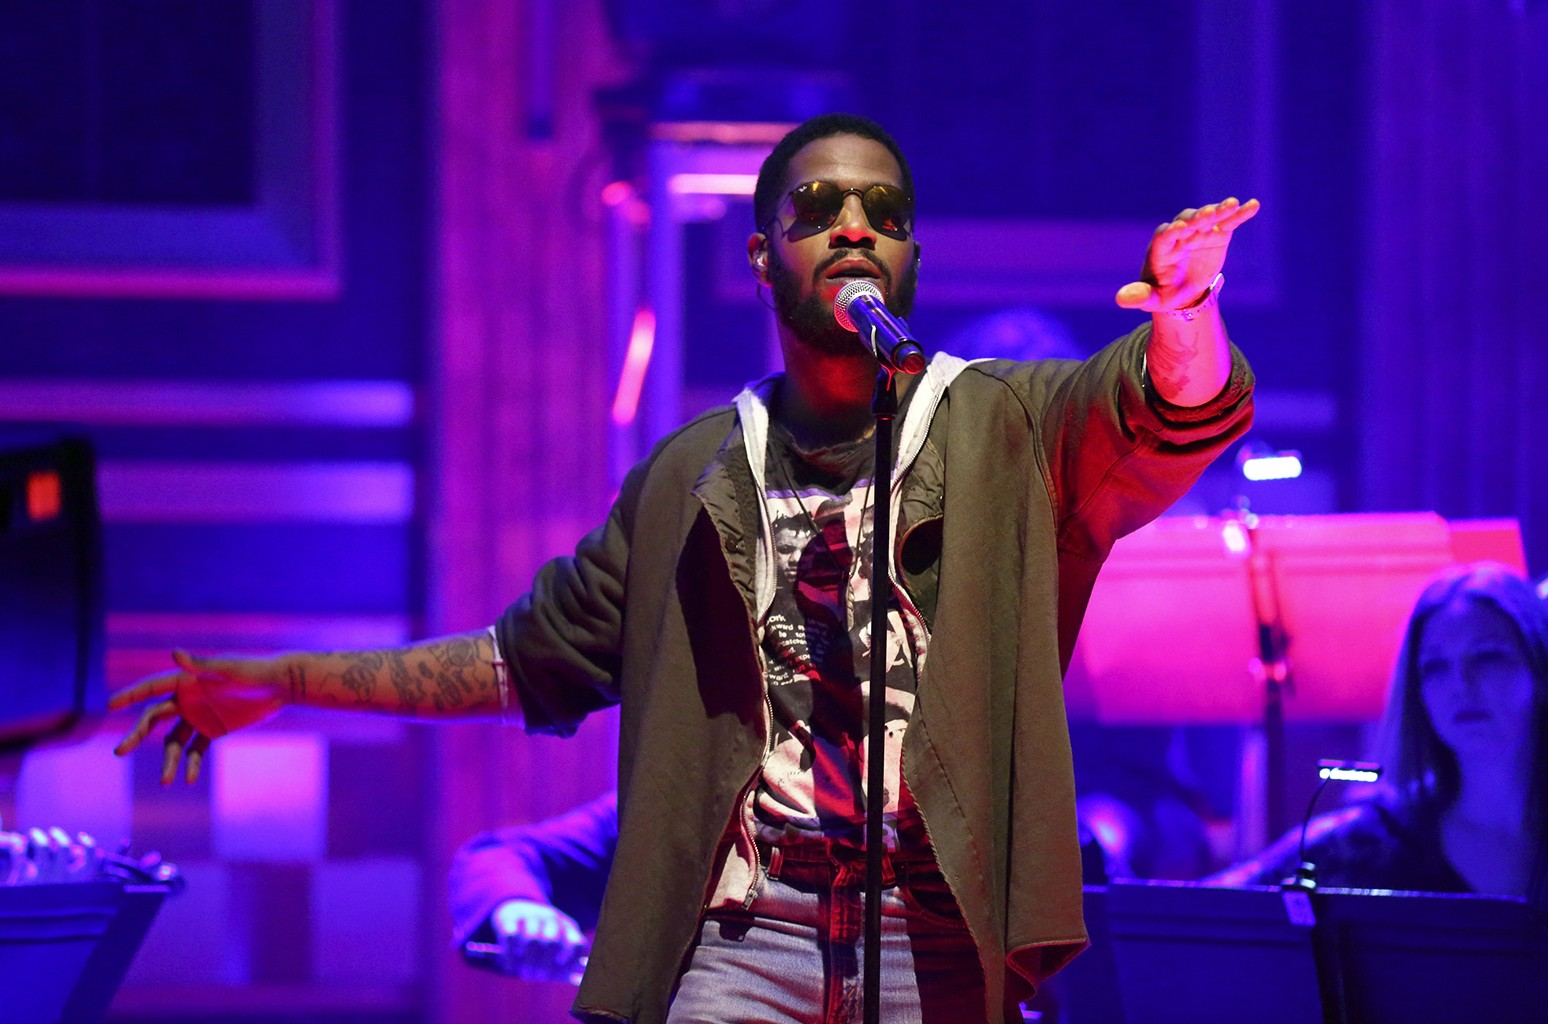 Kid Cudi performs on The Tonight Show Starring Jimmy Fallon on Feb. 8, 2017.